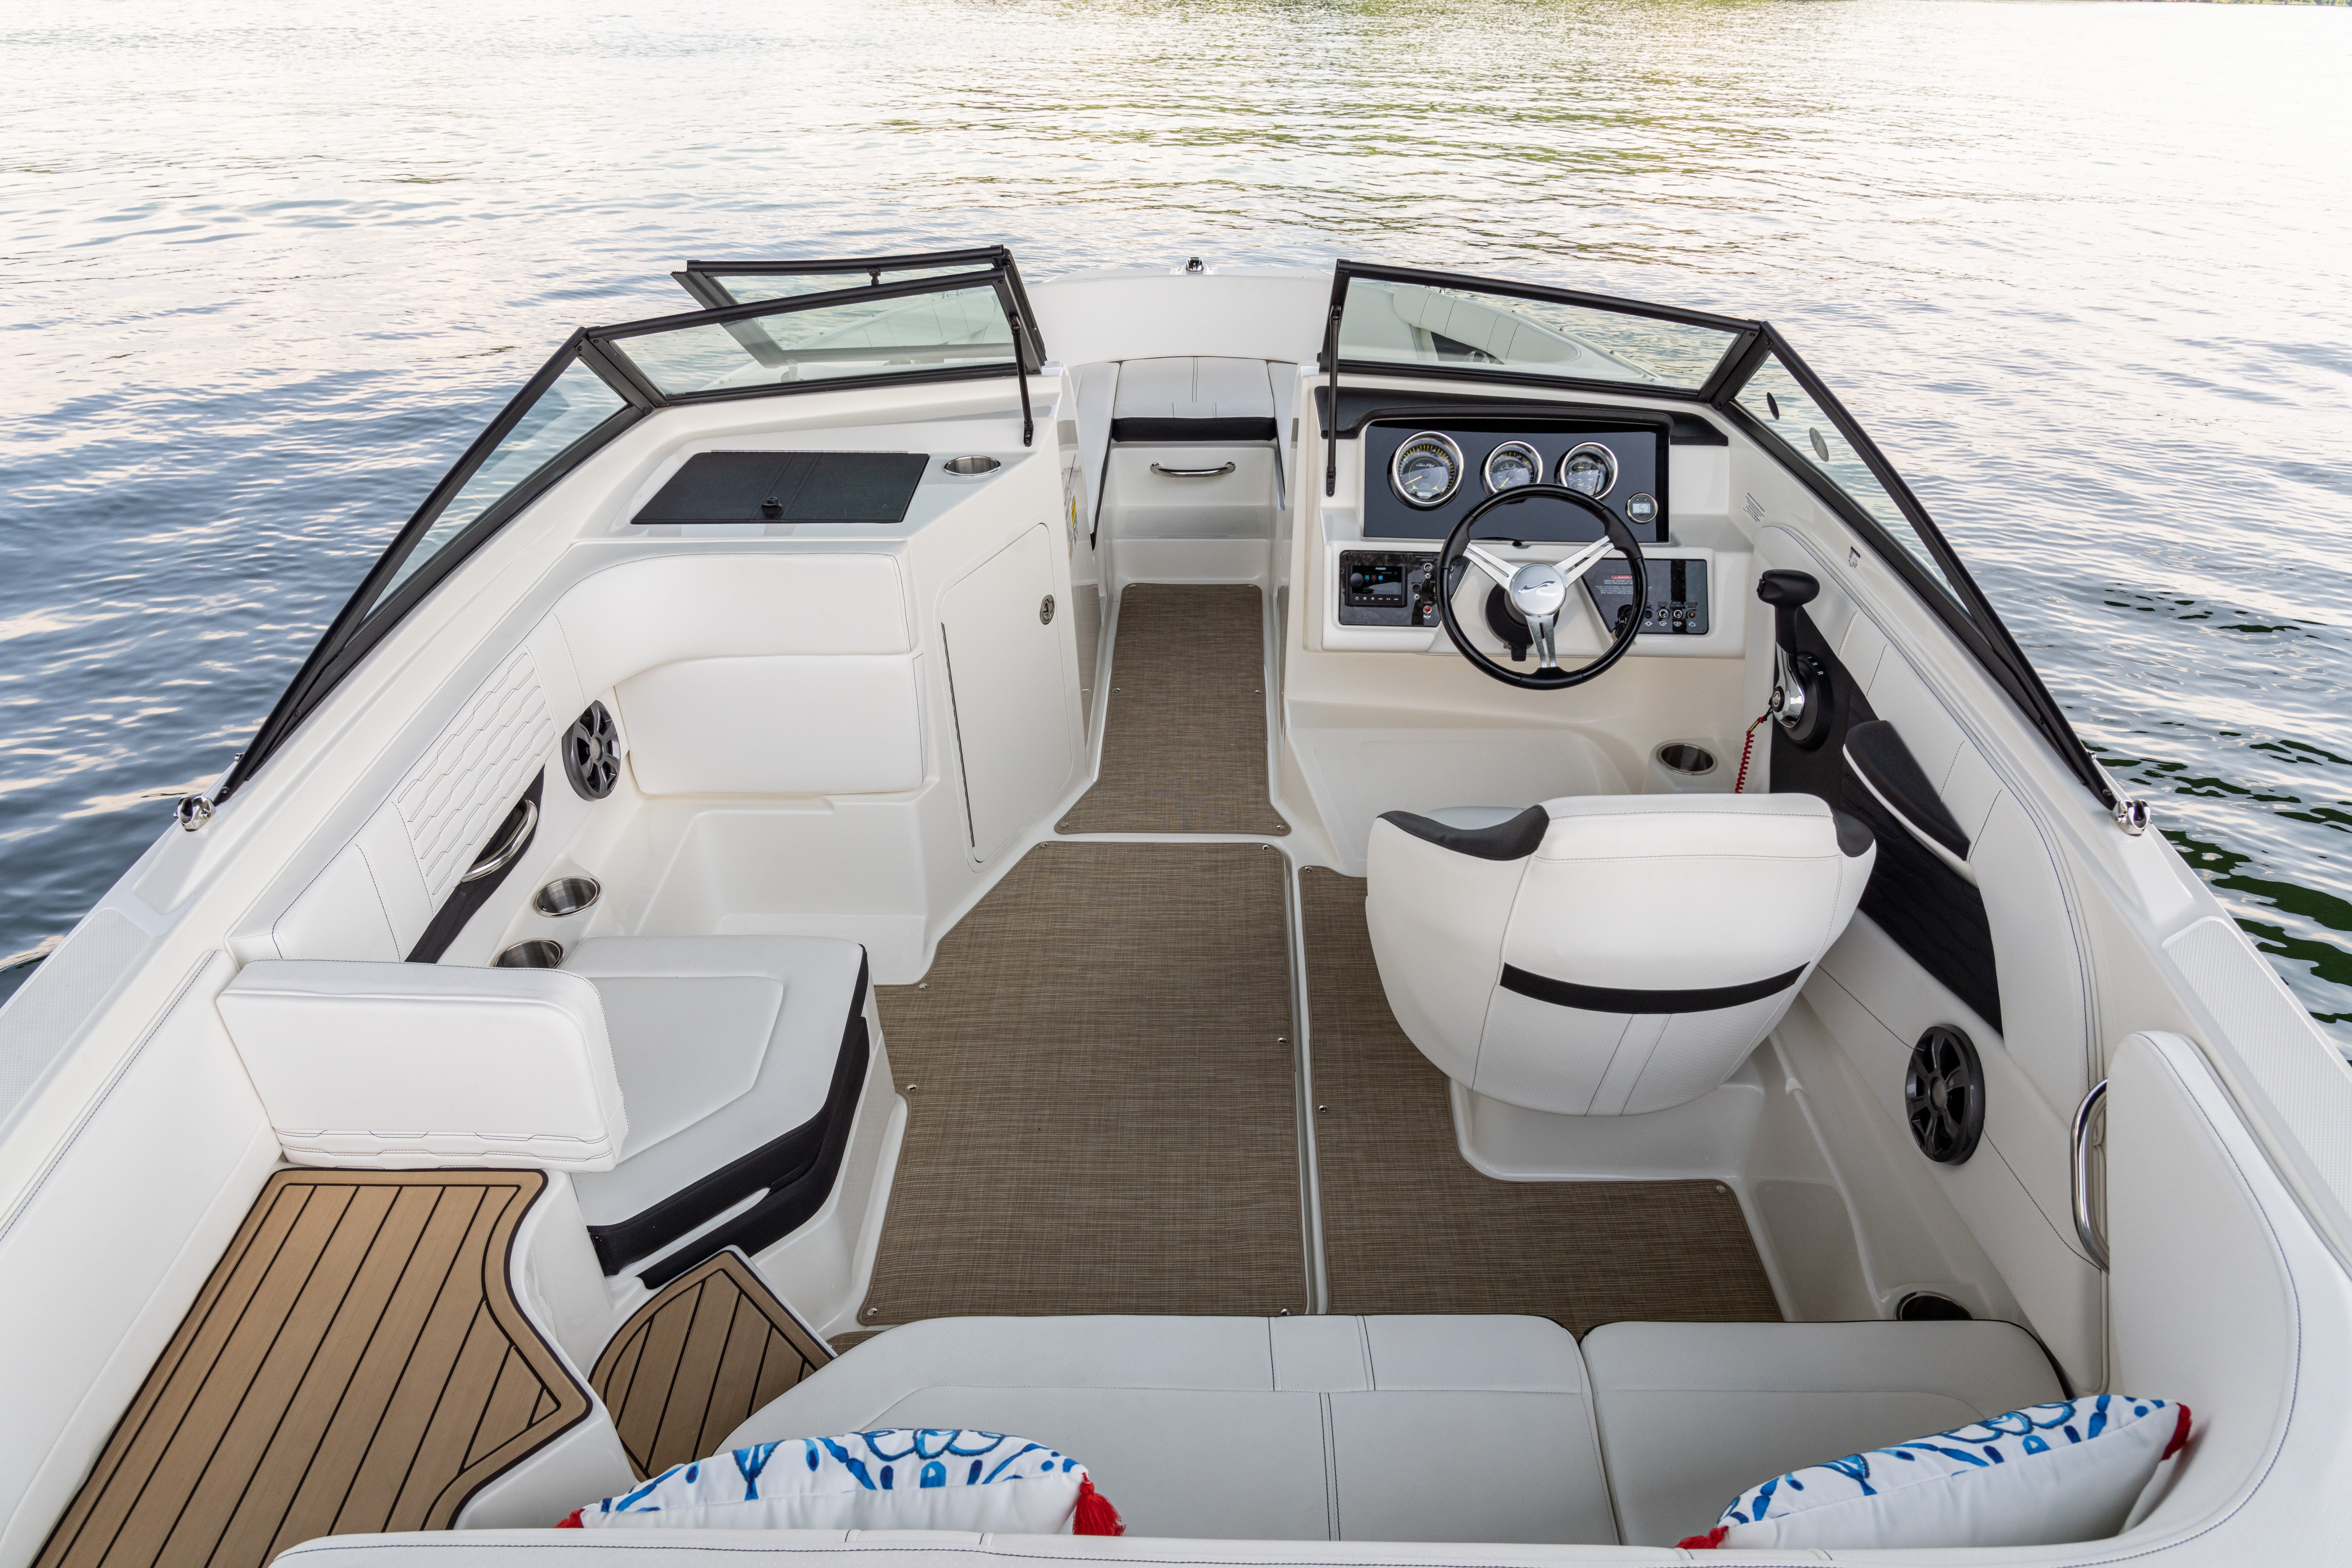 2022 Sea Ray boat for sale, model of the boat is 190spx & Image # 3 of 6